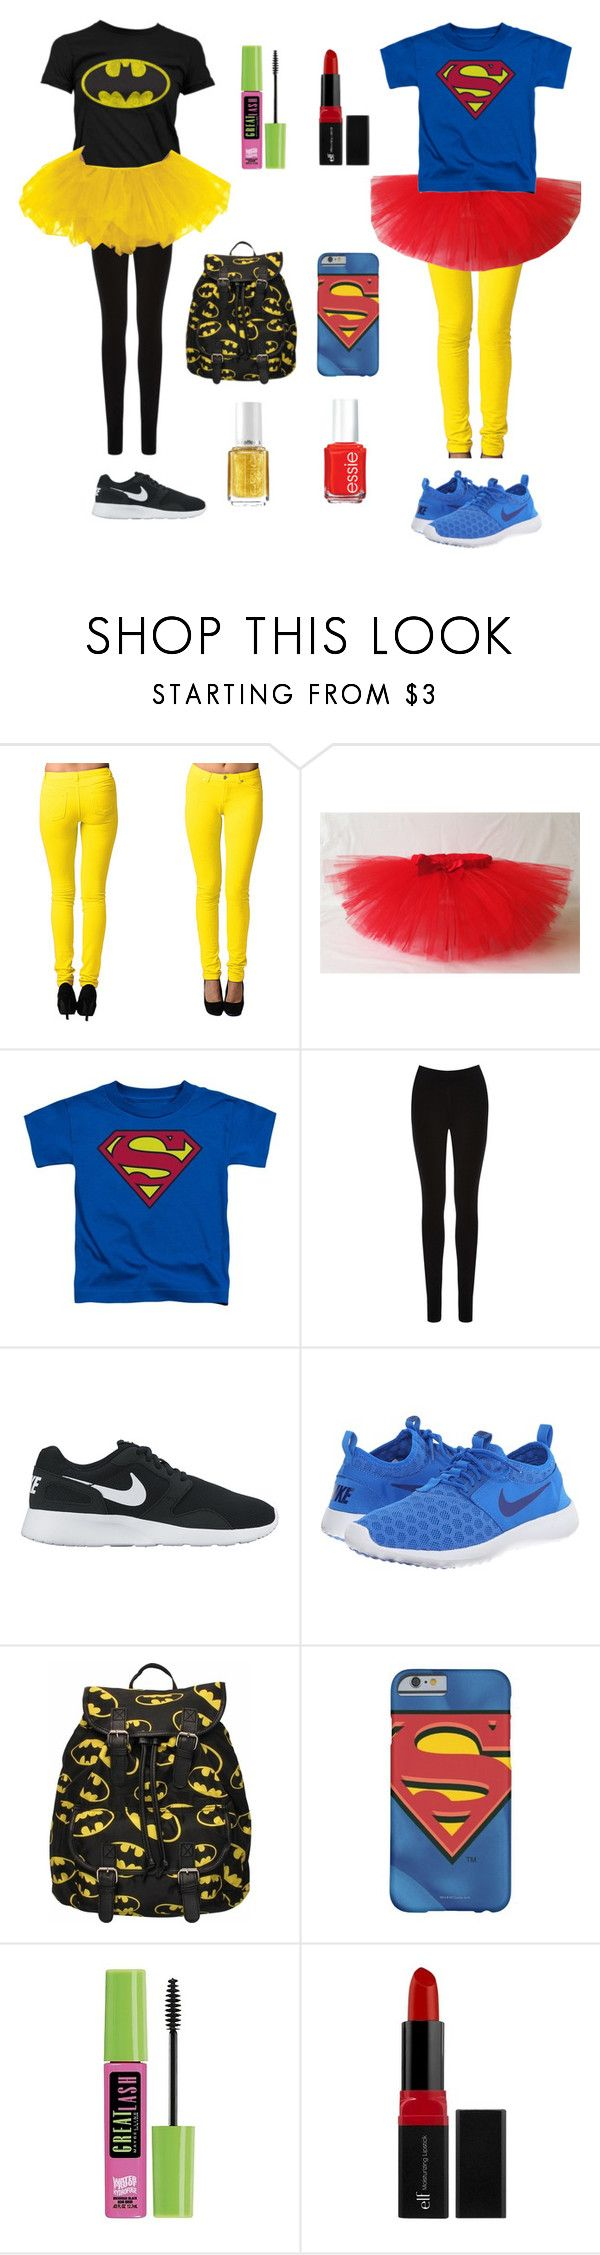 """BFF superhero Halloween costume"" by npd531 ❤ liked on Polyvore featuring Oasis, NIKE, Maybelline, e.l.f. and Essie"